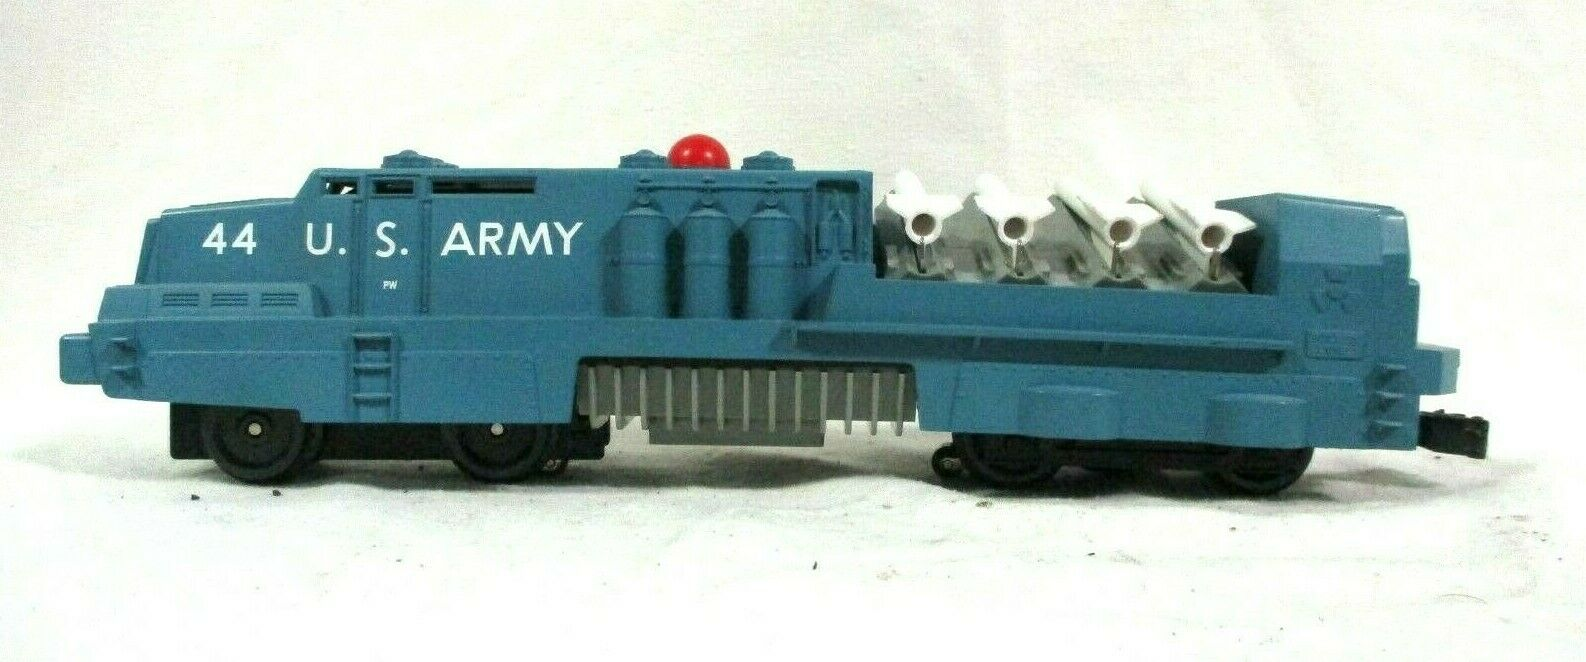 Lionel 6-21788  44 United States Army Locomotive w  Missiles Tested correres B65-11